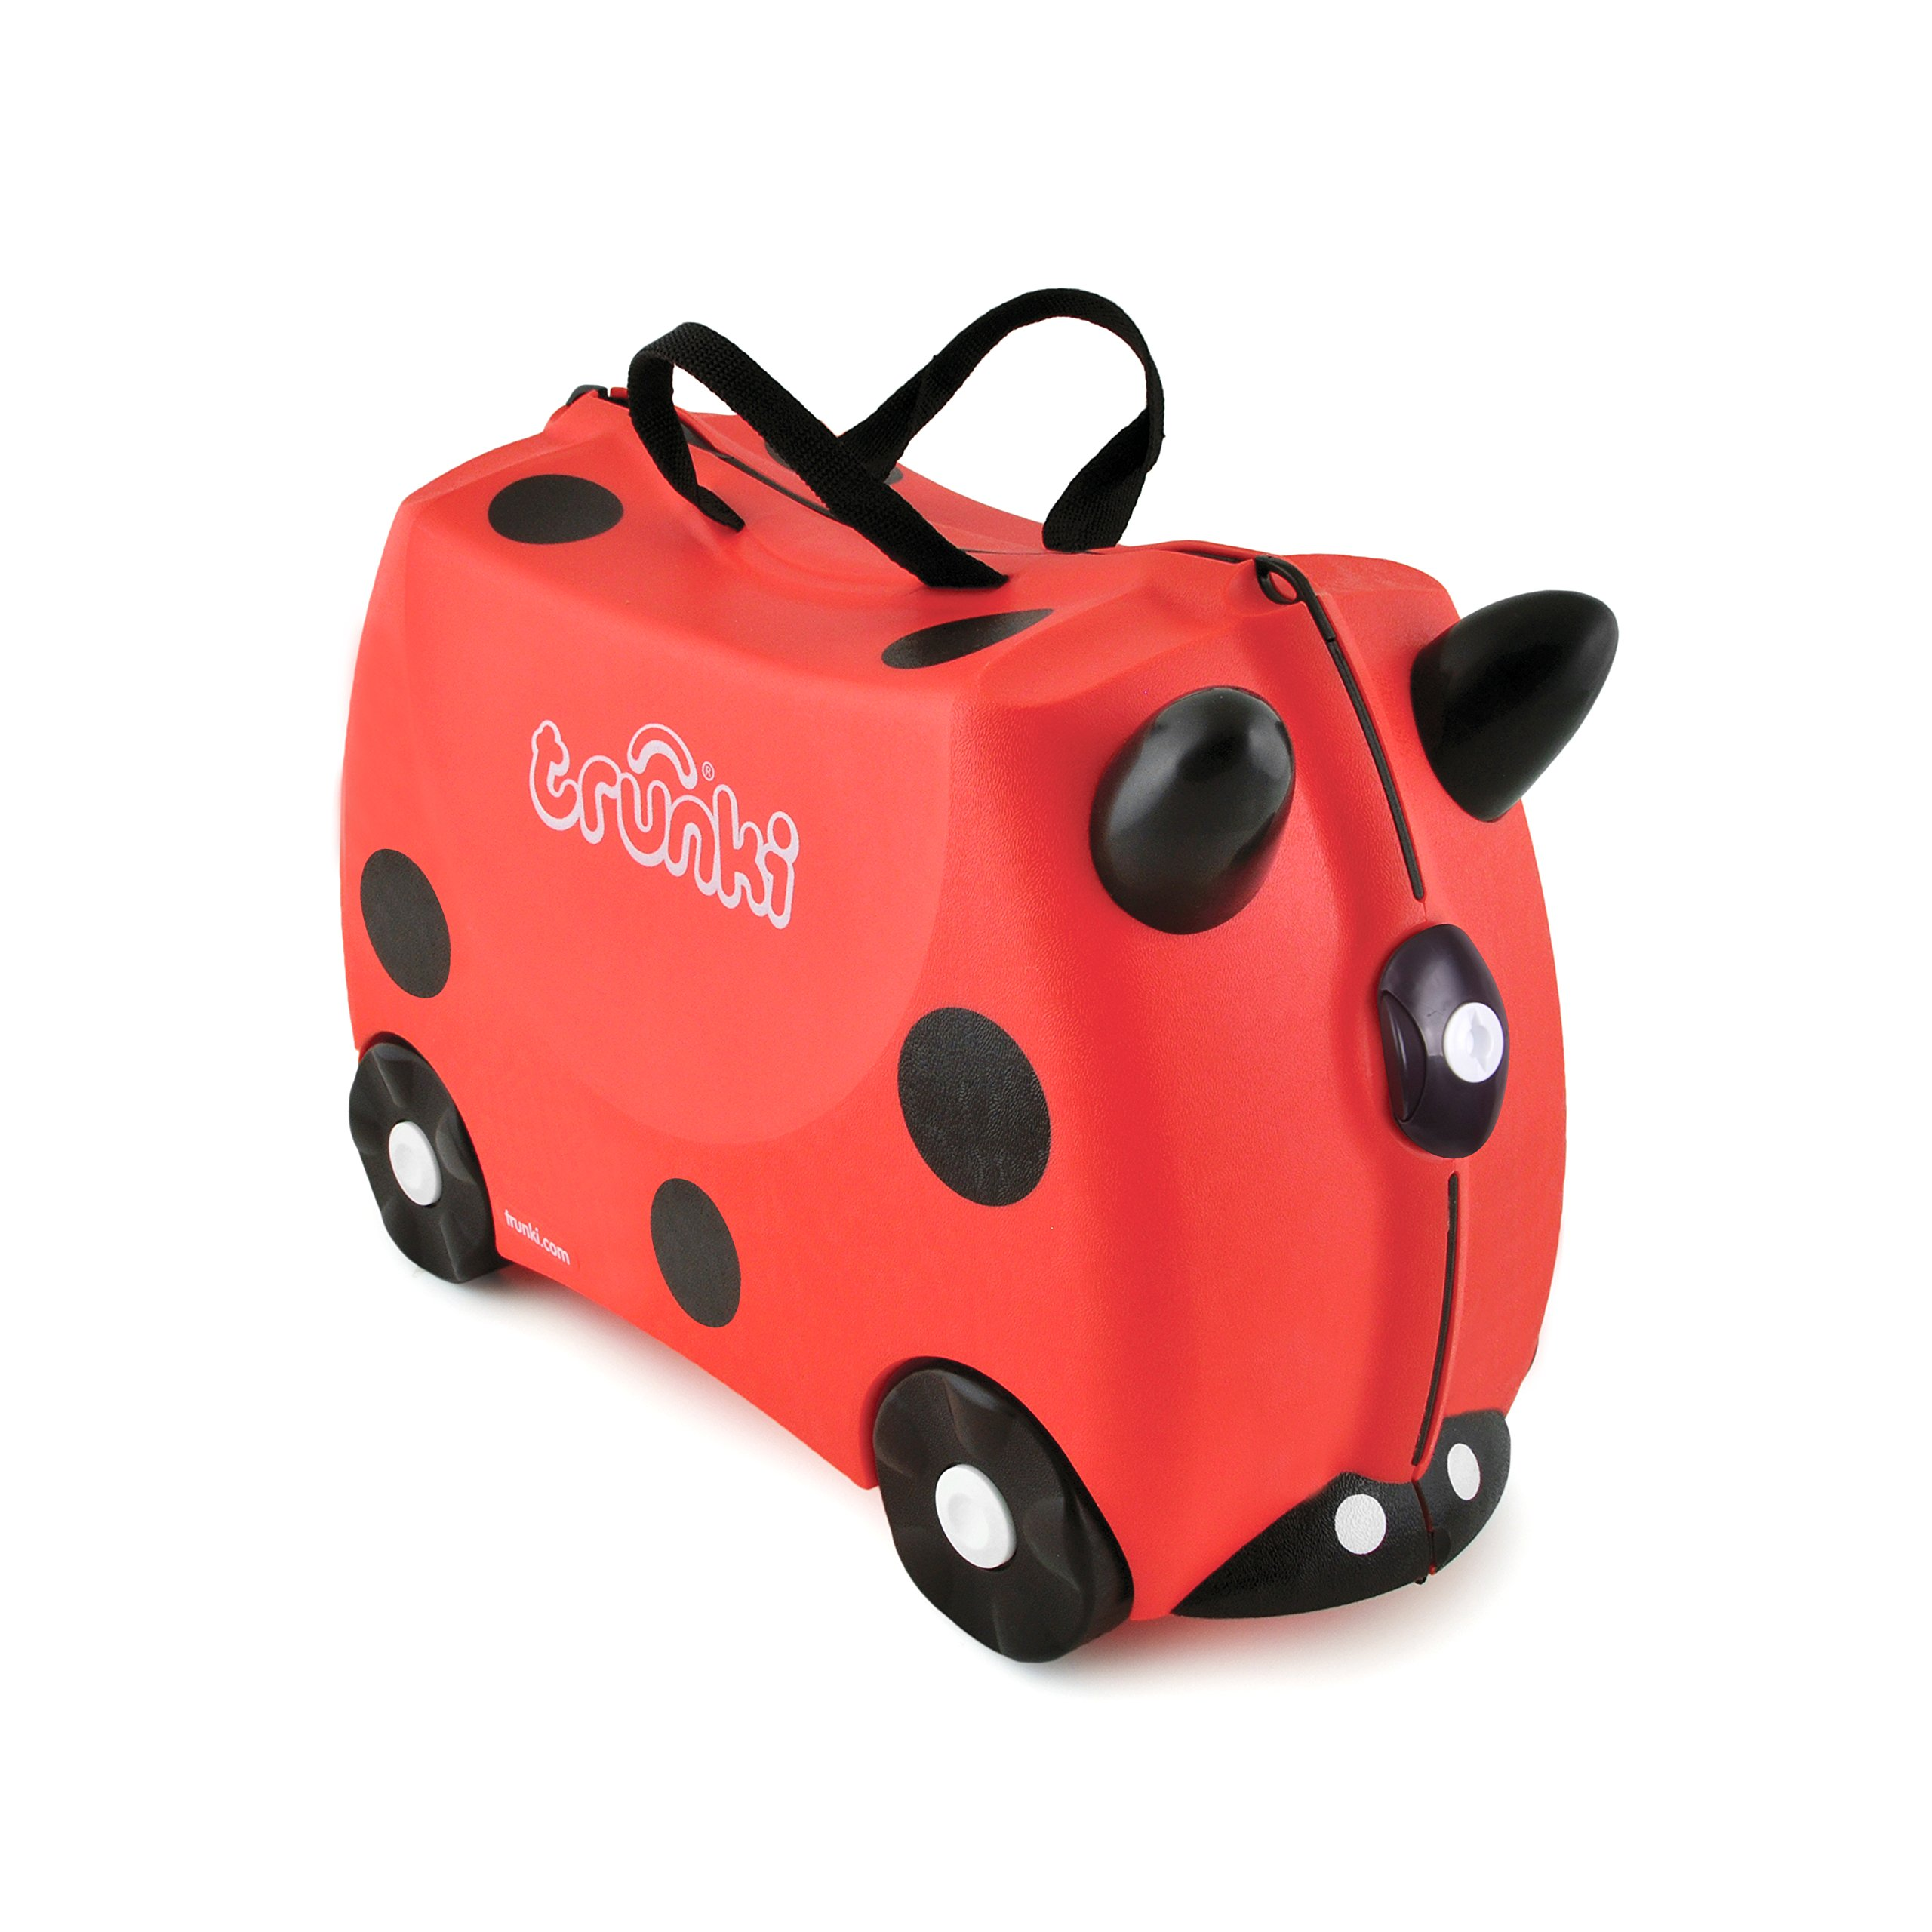 Trunki: The Original Ride-On Suitcase NEW, Harley (Red)